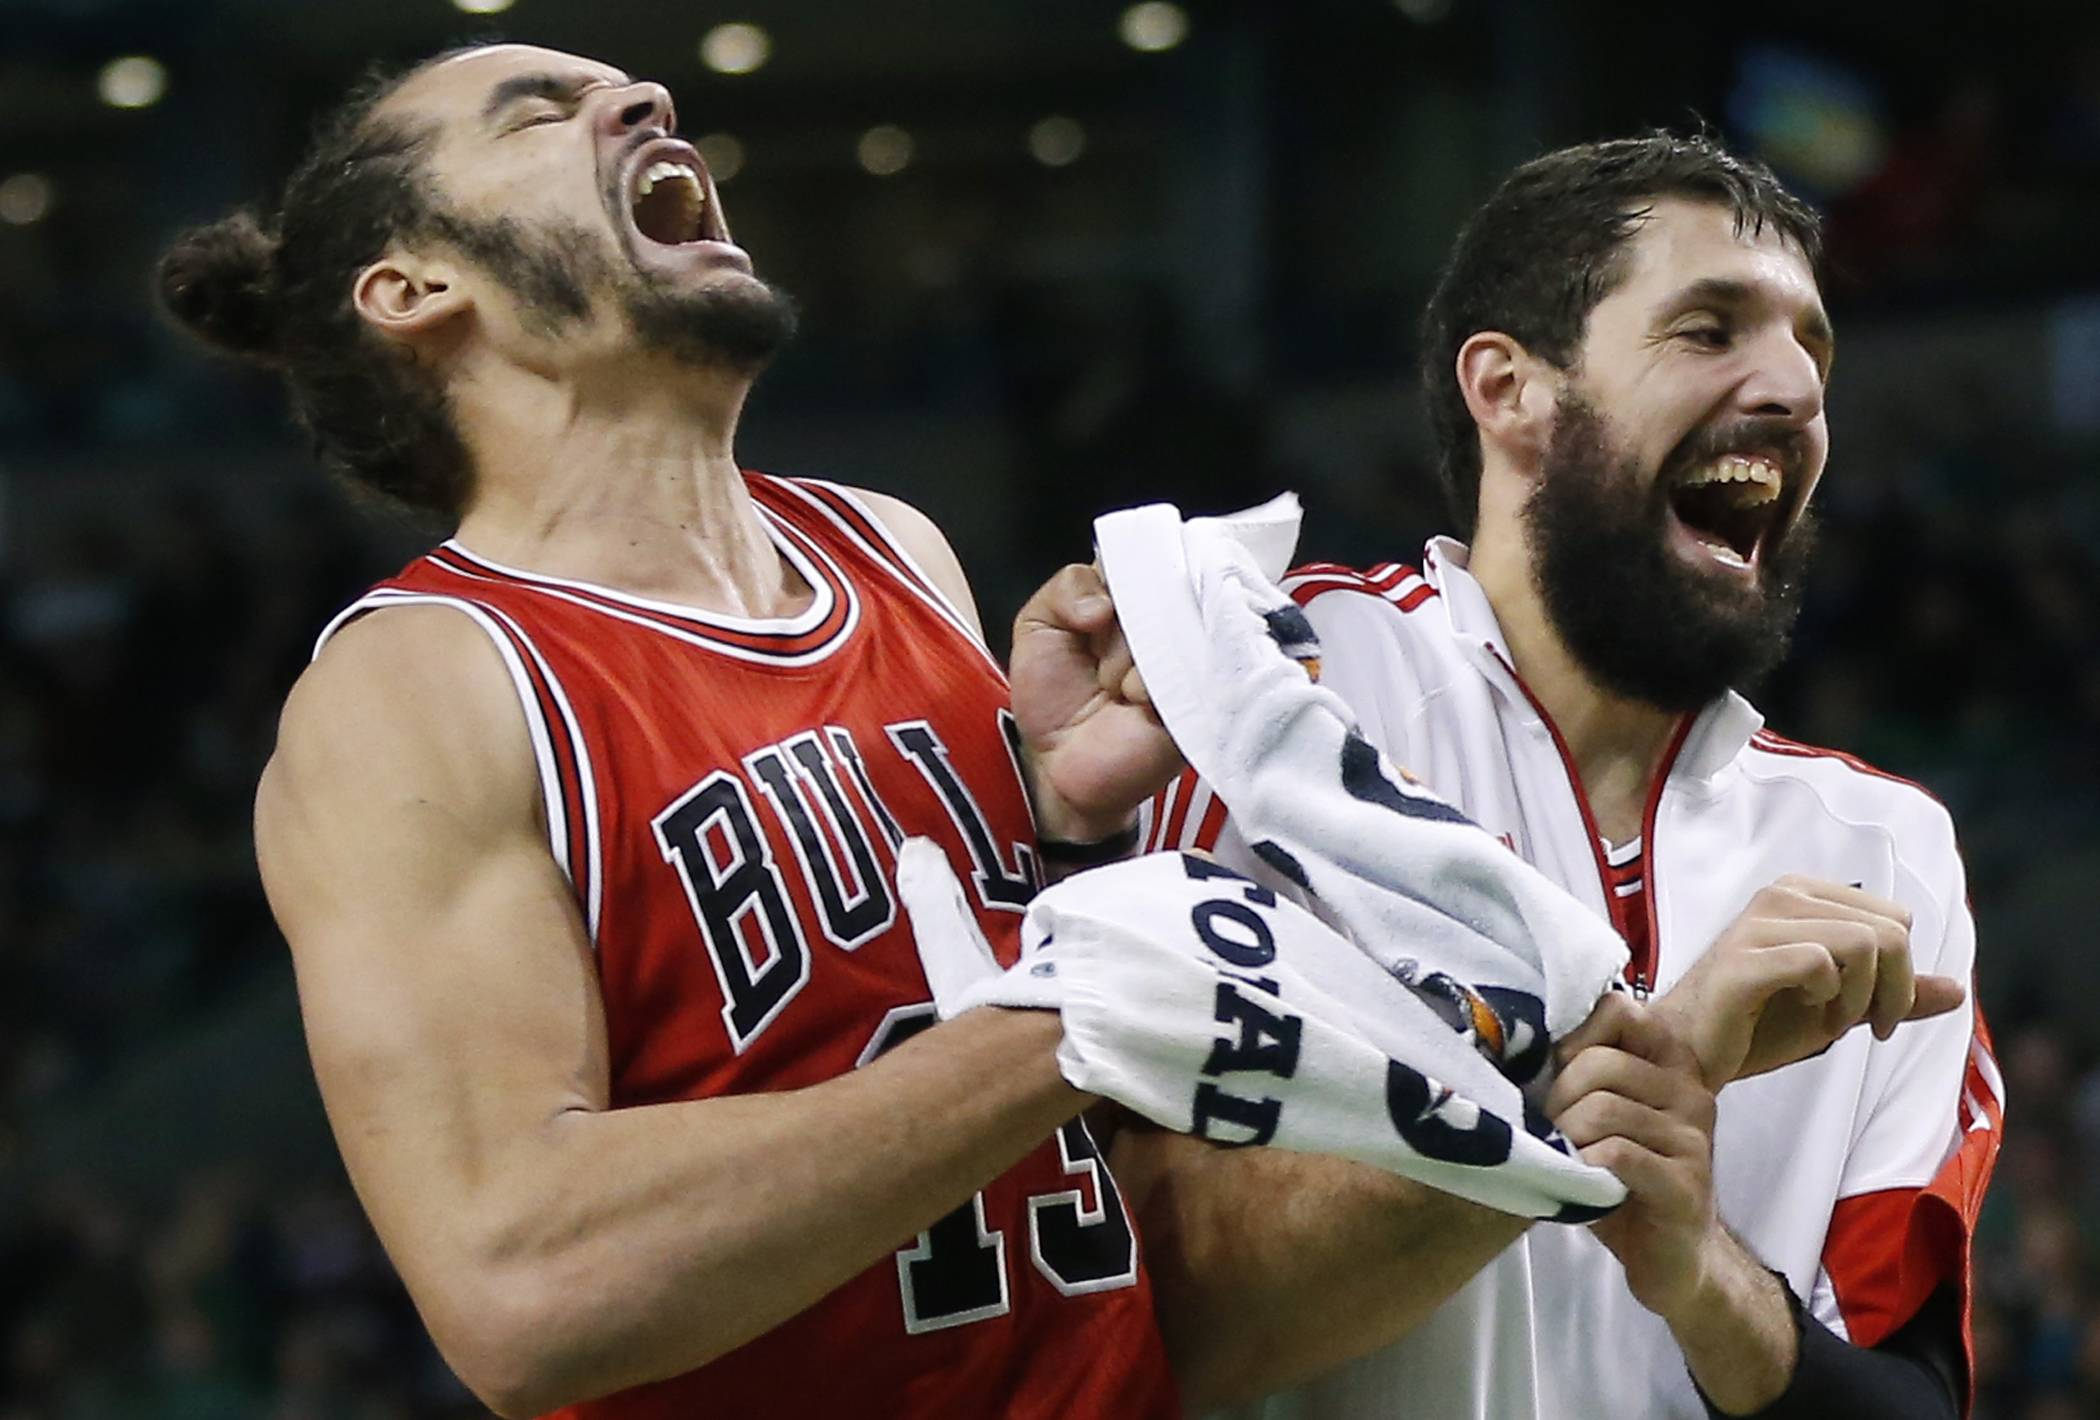 Chicago Bulls center Joakim Noah, left, celebrates with teammate Nikola Miroticin after making a crucial basket in the last minute of a basketball game against the Boston Celtics in Boston, Friday, Nov. 28, 2014. The Bulls won 109-102. (AP Photo/Elise Amendola)